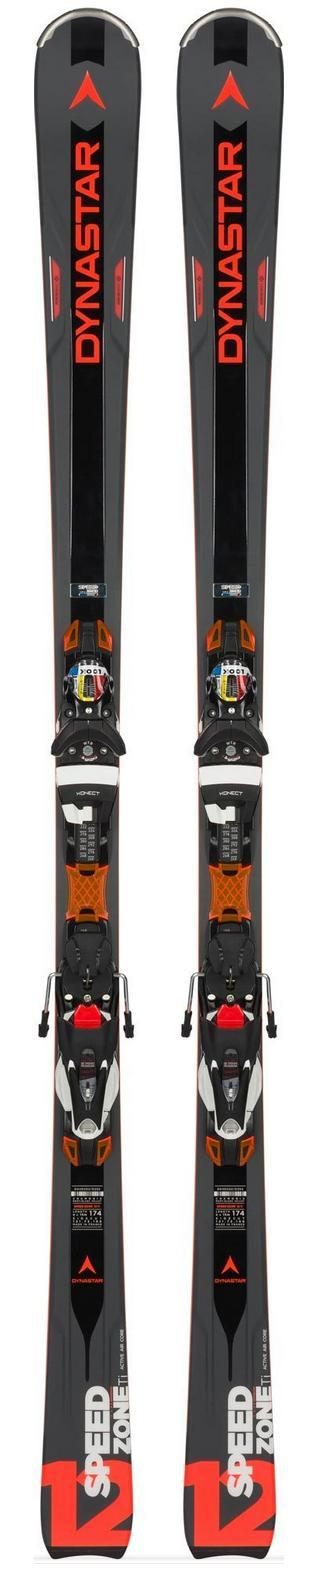 2019 Dynastar Speed Zone 12 Ti snow skis (CLEARANCE) - ProSkiGuy your Hometown Ski Shop on the web